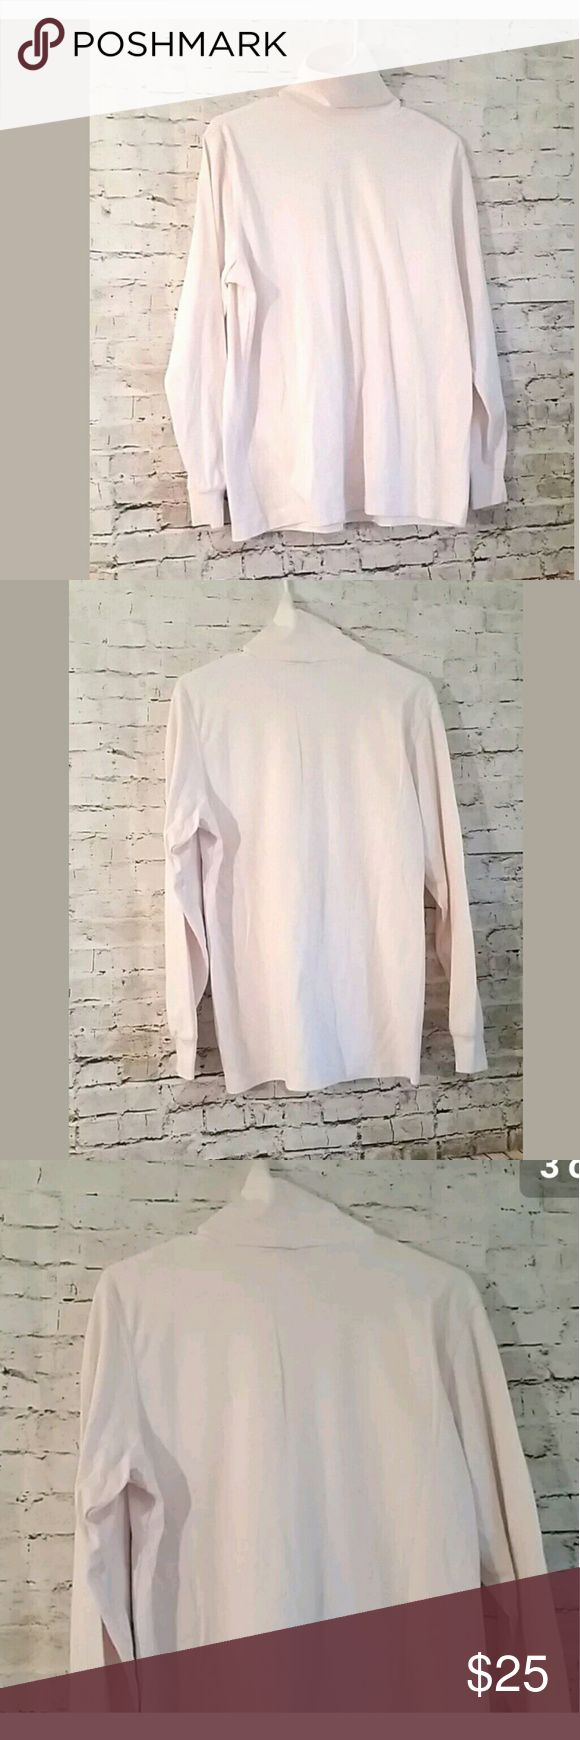 """Lands End Turtleneck Shirt Top Pink Long Sleeve Lands End Turtleneck Shirt Top Pink Long Sleeve 100 Cotton Made in USA  Measurement-Taken laying garment flat:        Pit to Pit: 20""""         Length: 25""""  Size: M Medium   Condition: Great used condition,please feel free to ask questions! Lands' End Tops Tees - Long Sleeve"""